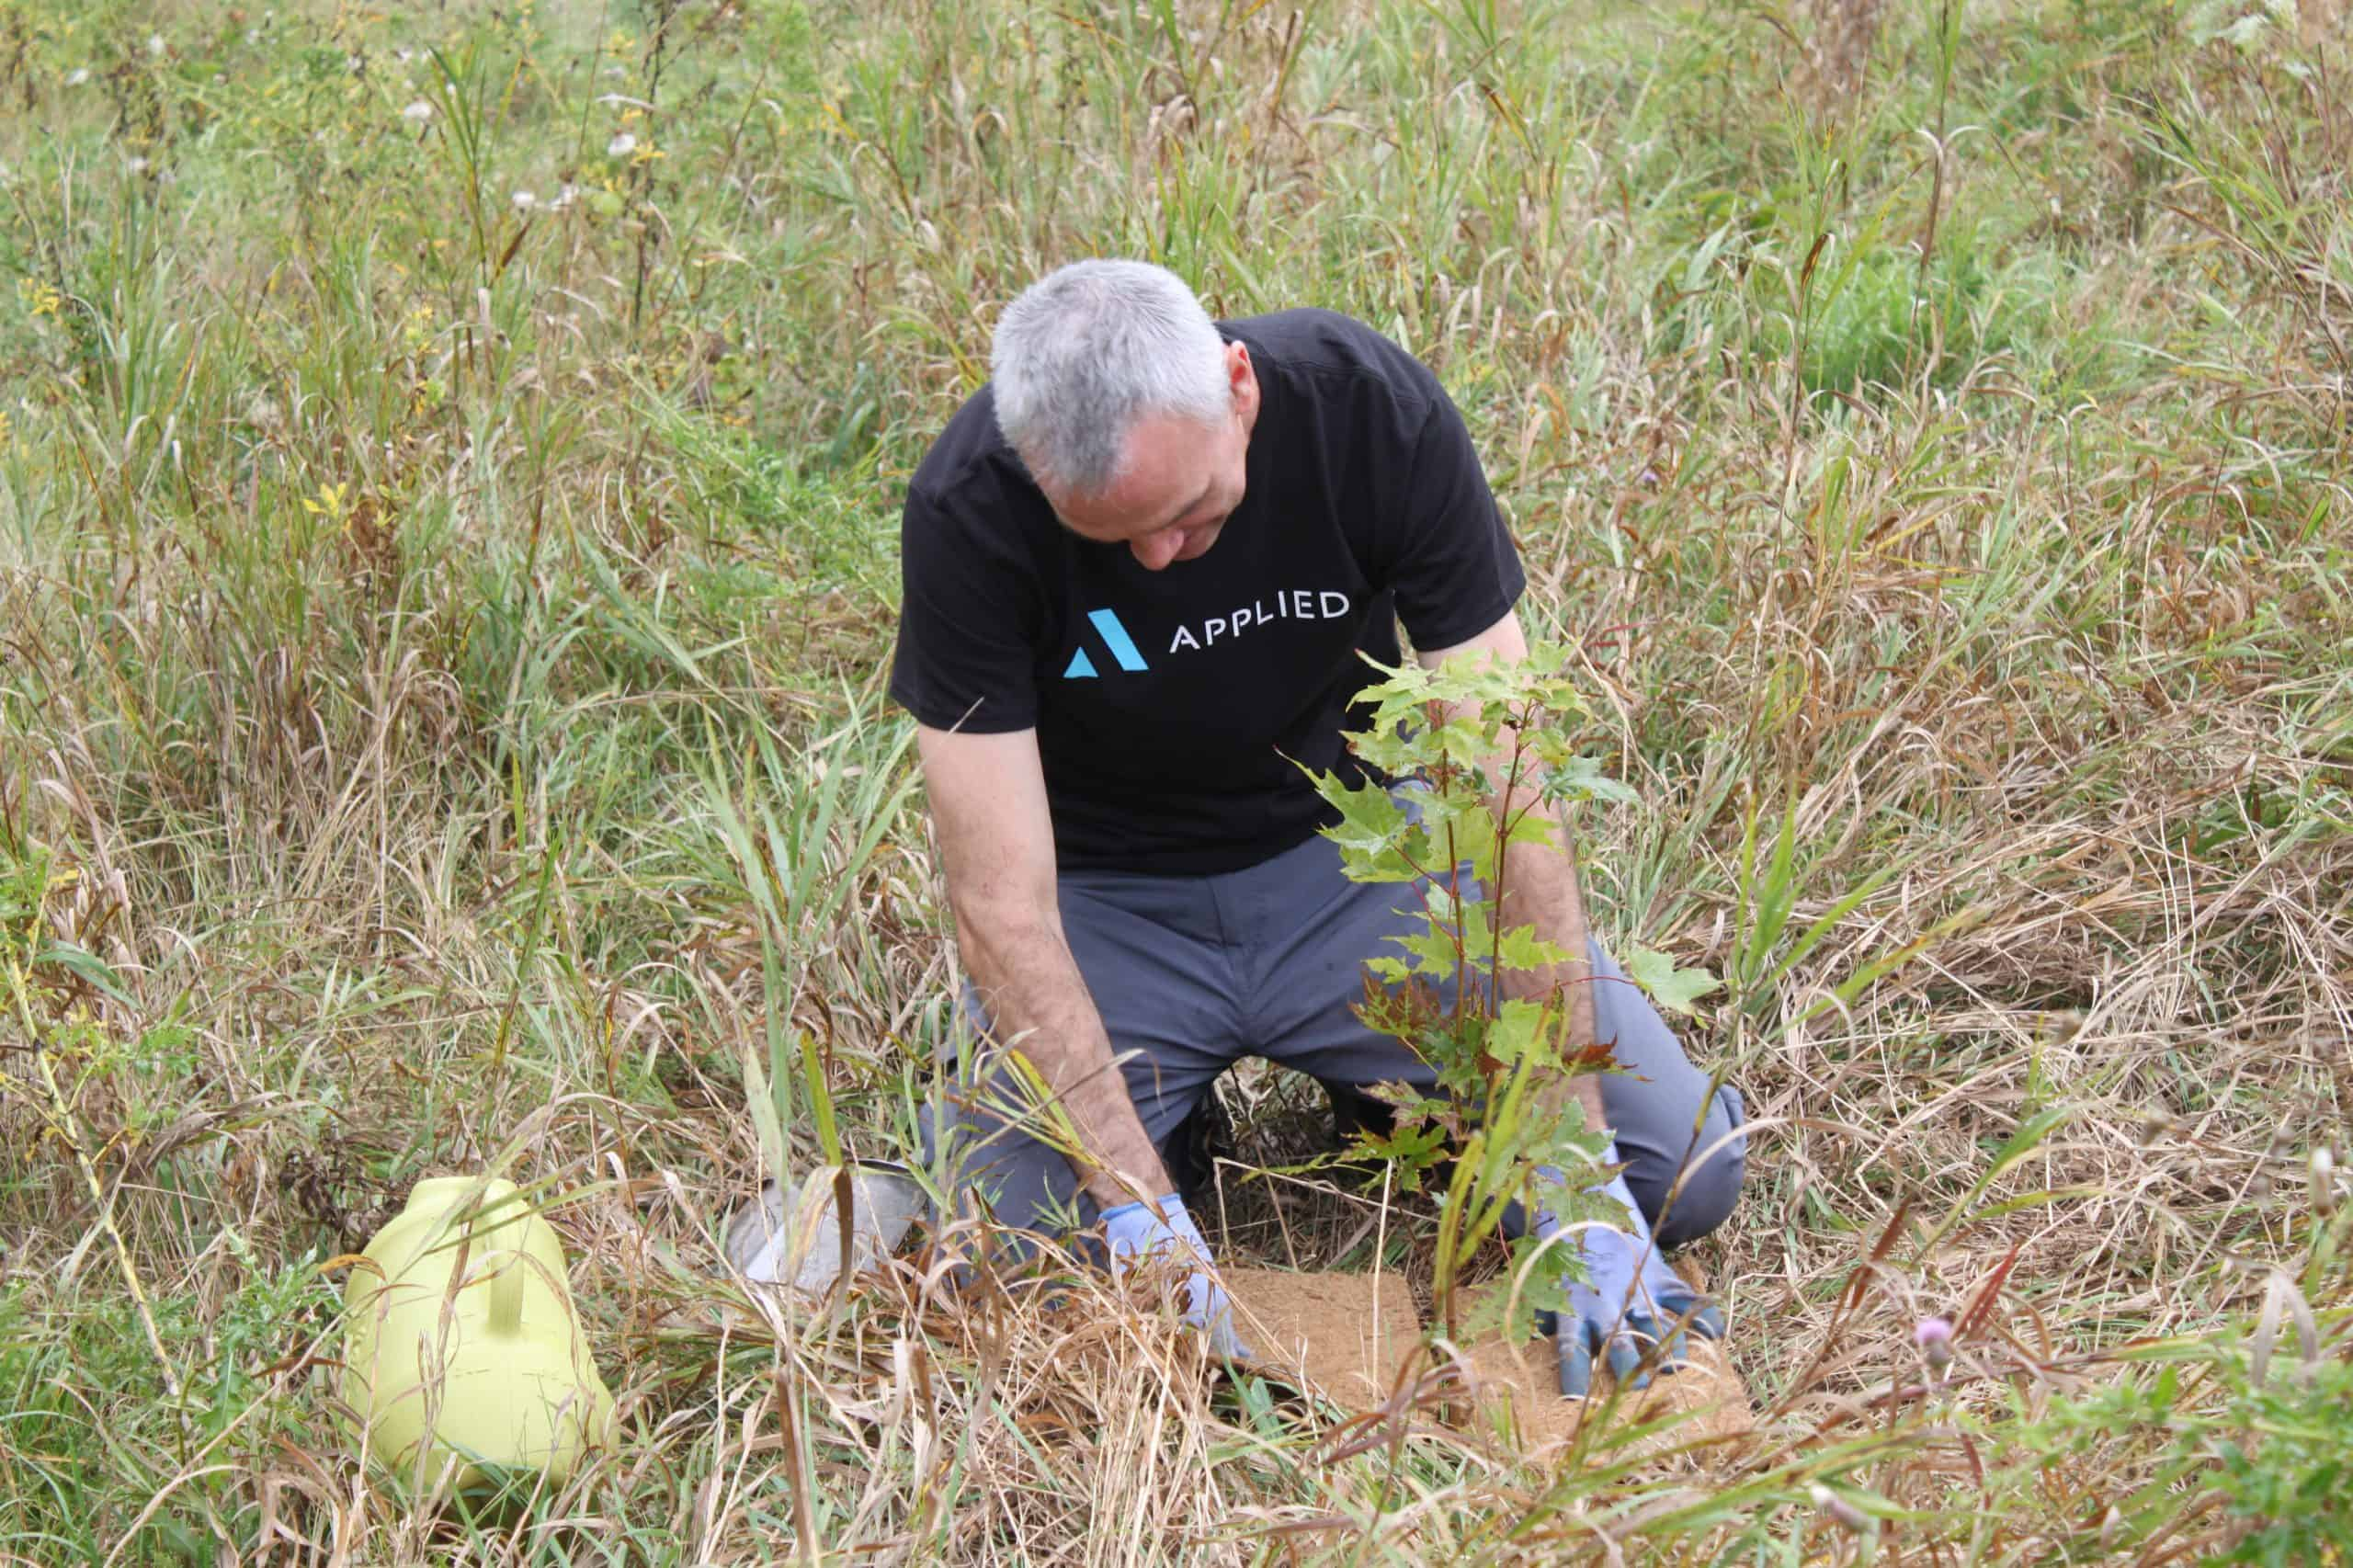 a person kneeling on the ground planting a tree